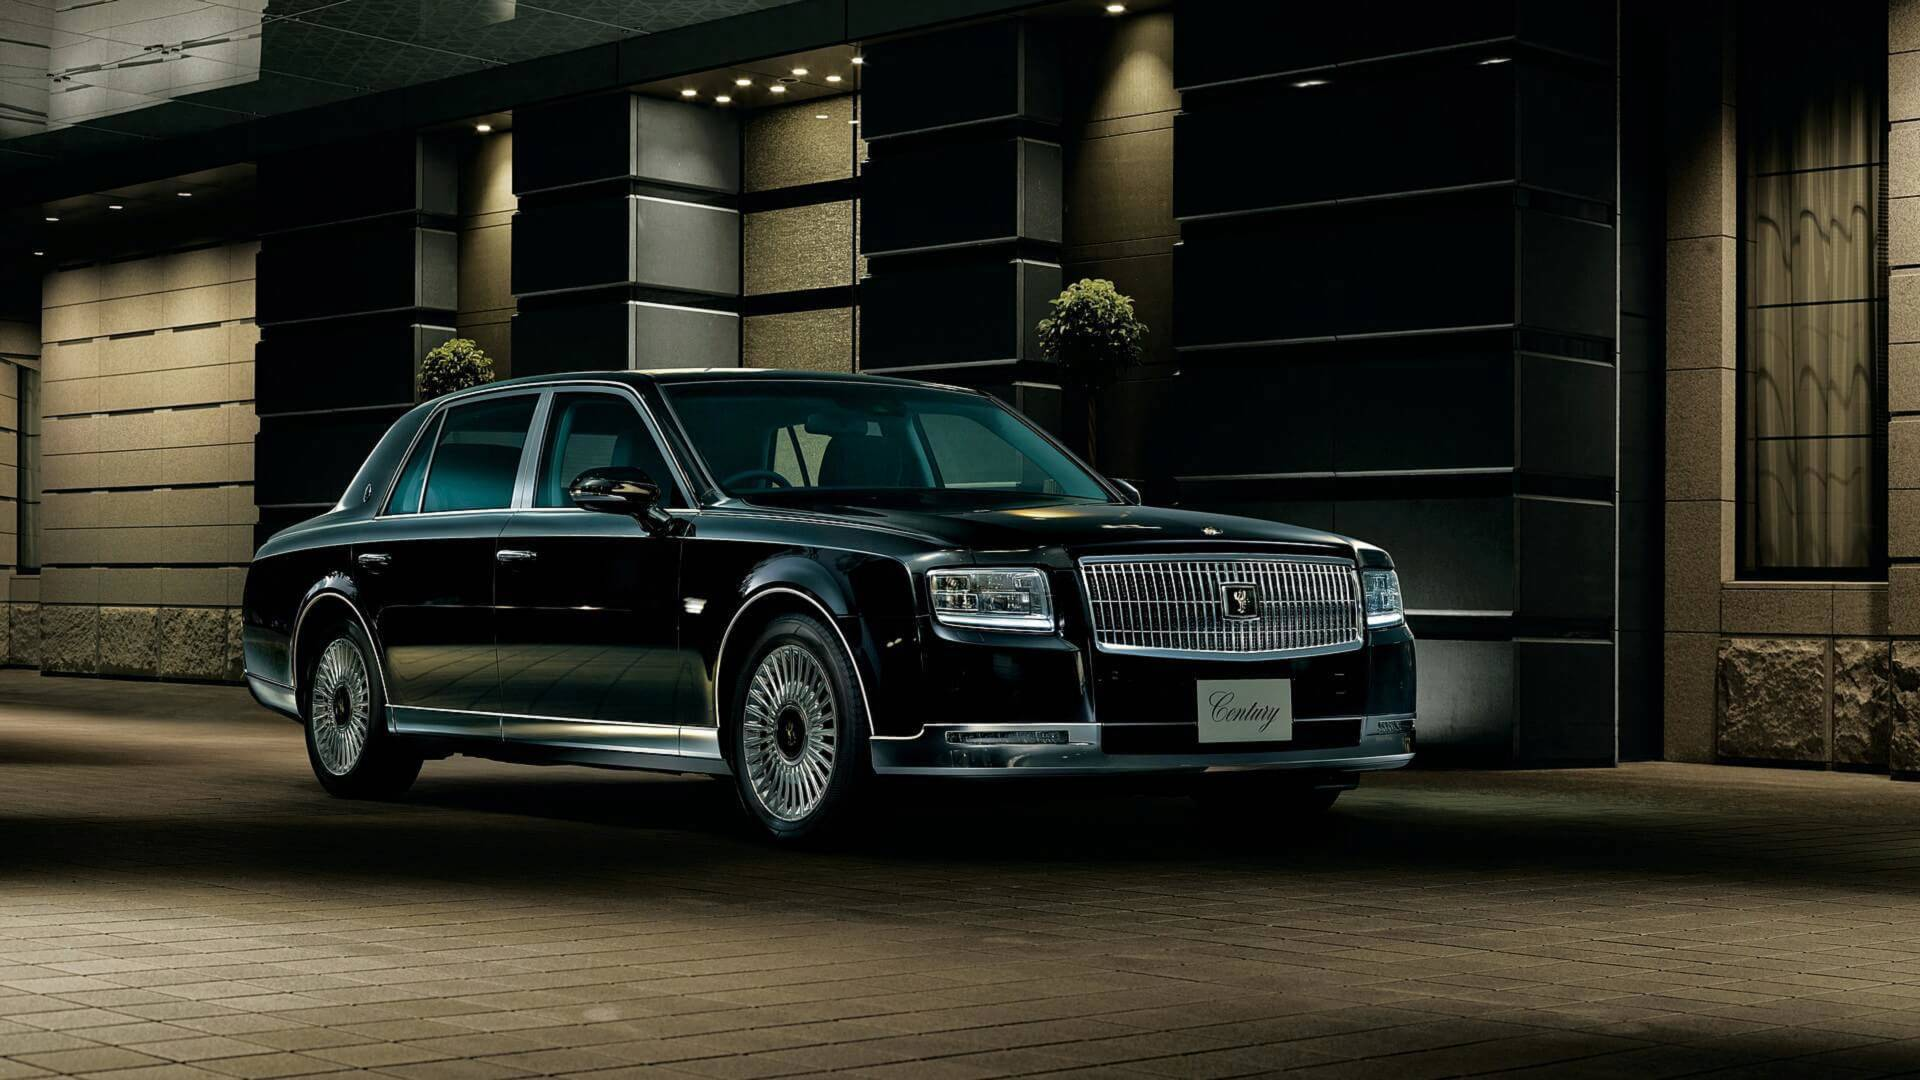 2018 Toyota Century Costs The Equivalent Of 178 183 In Japan